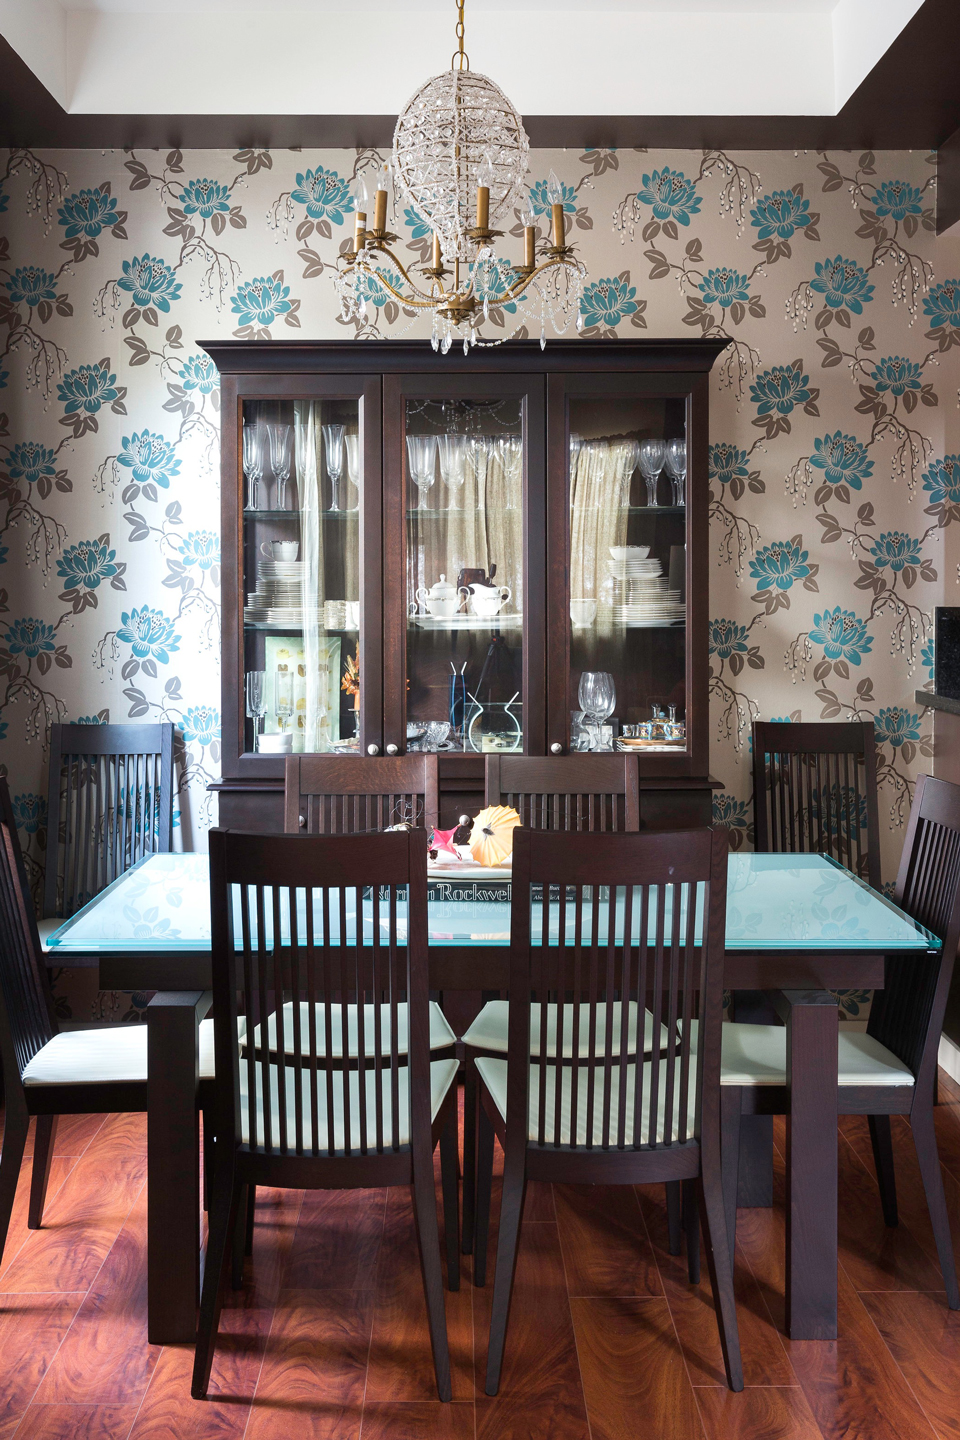 Blue and gray brown floral wallpaper in a dining room